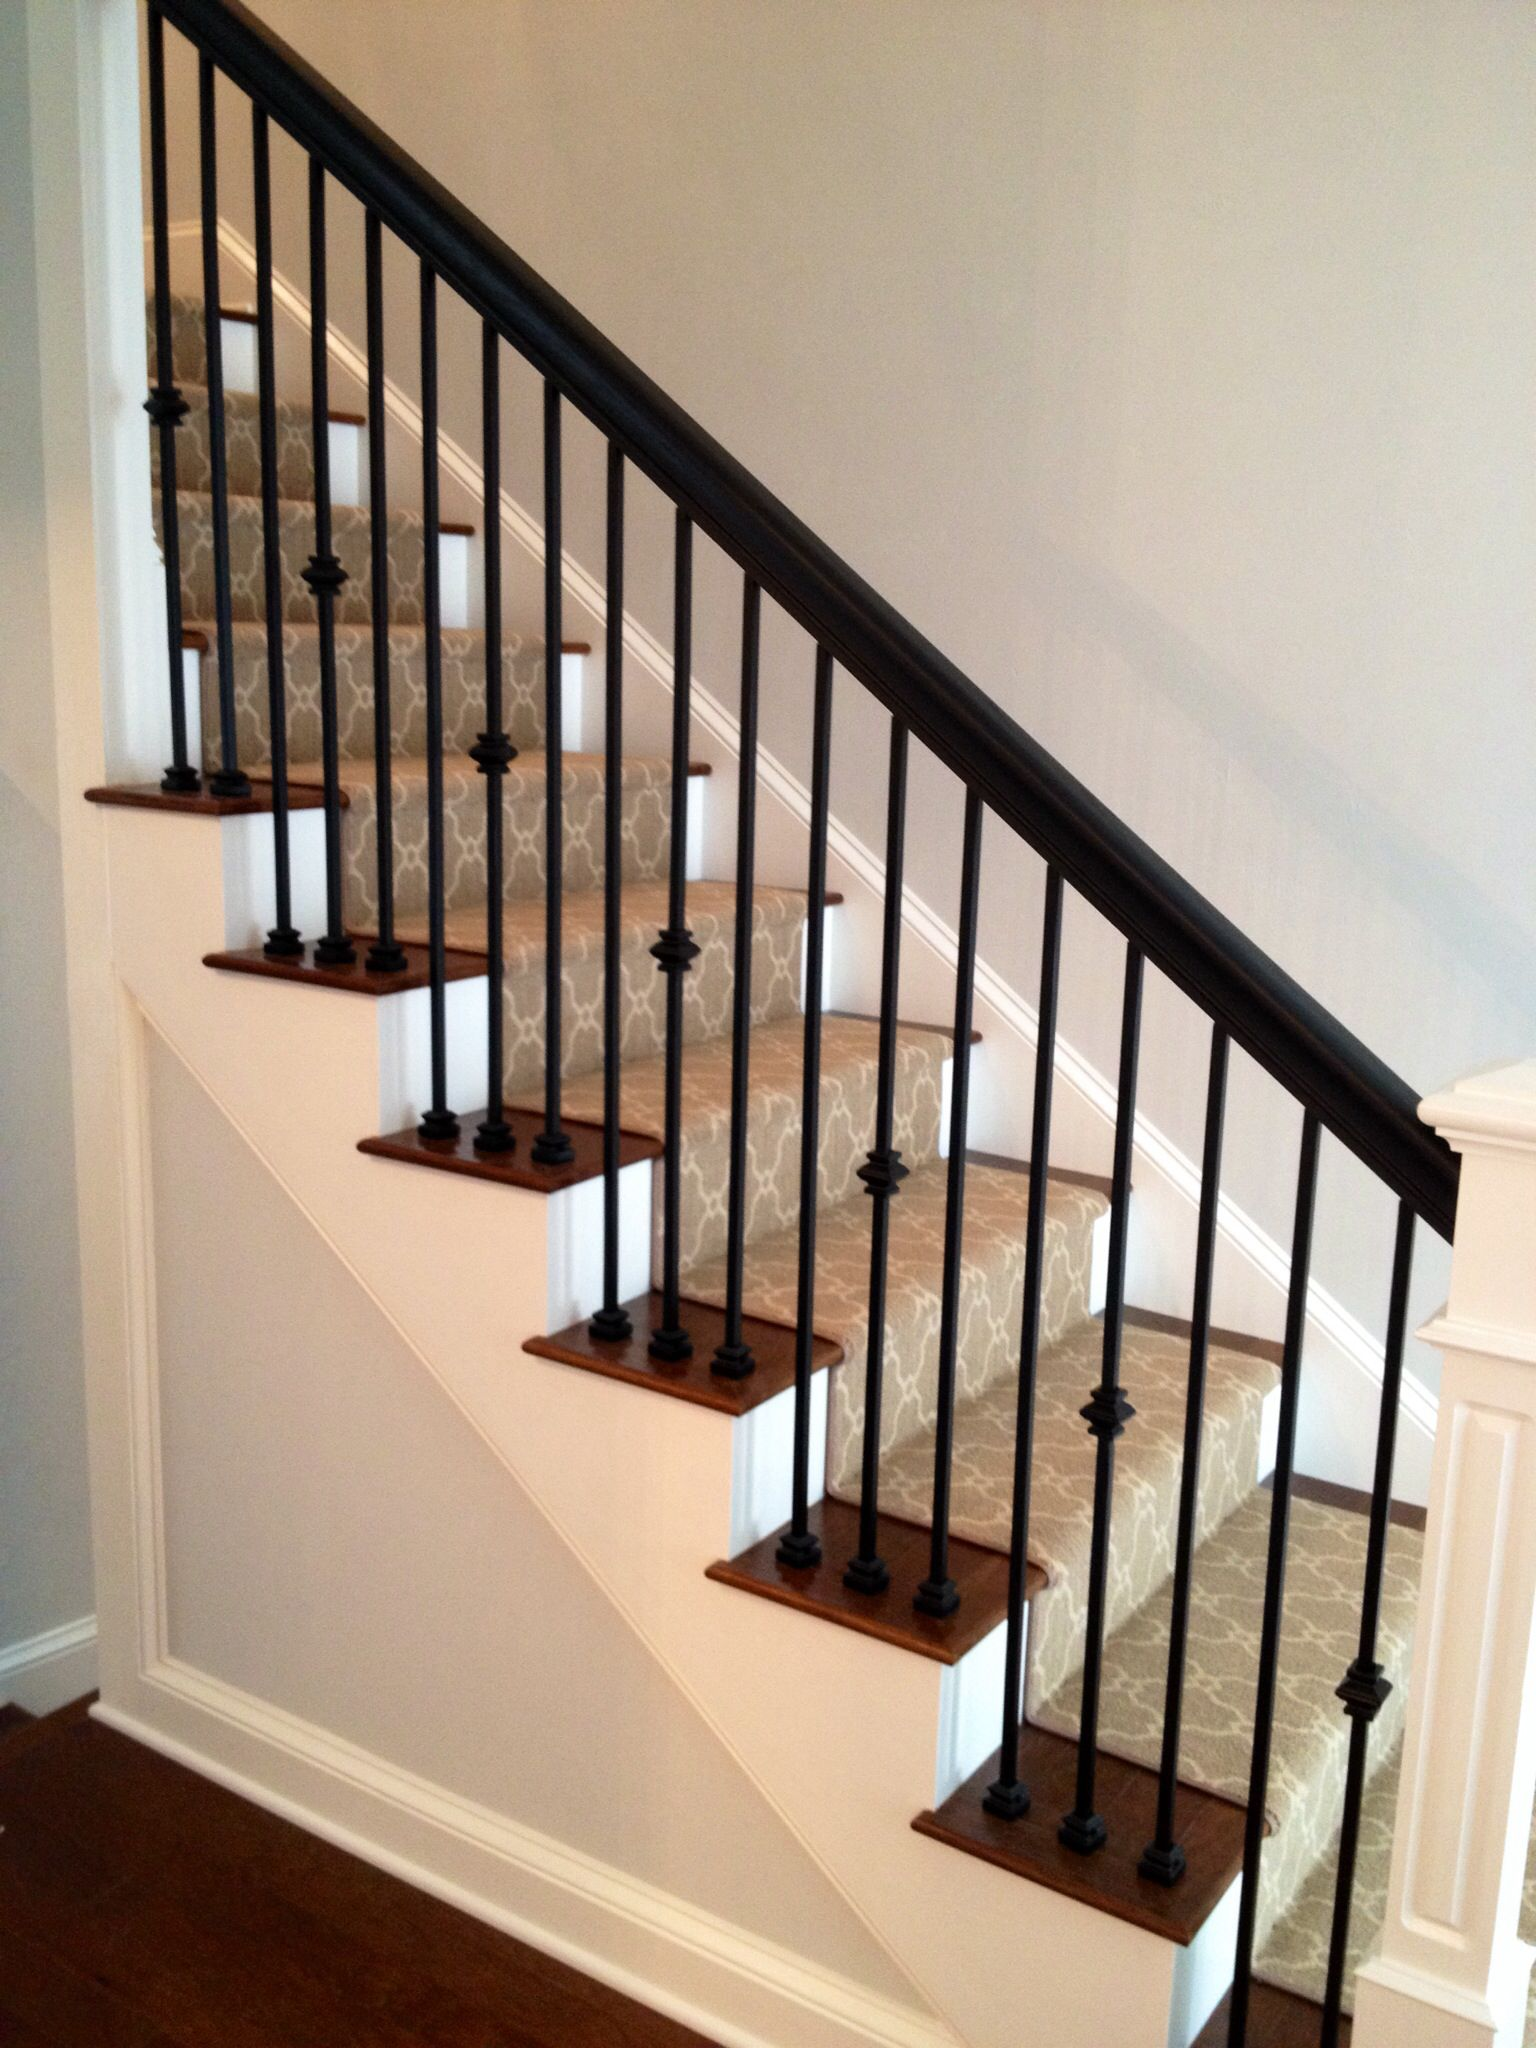 Iron baluster options for stair railing it will help me for my